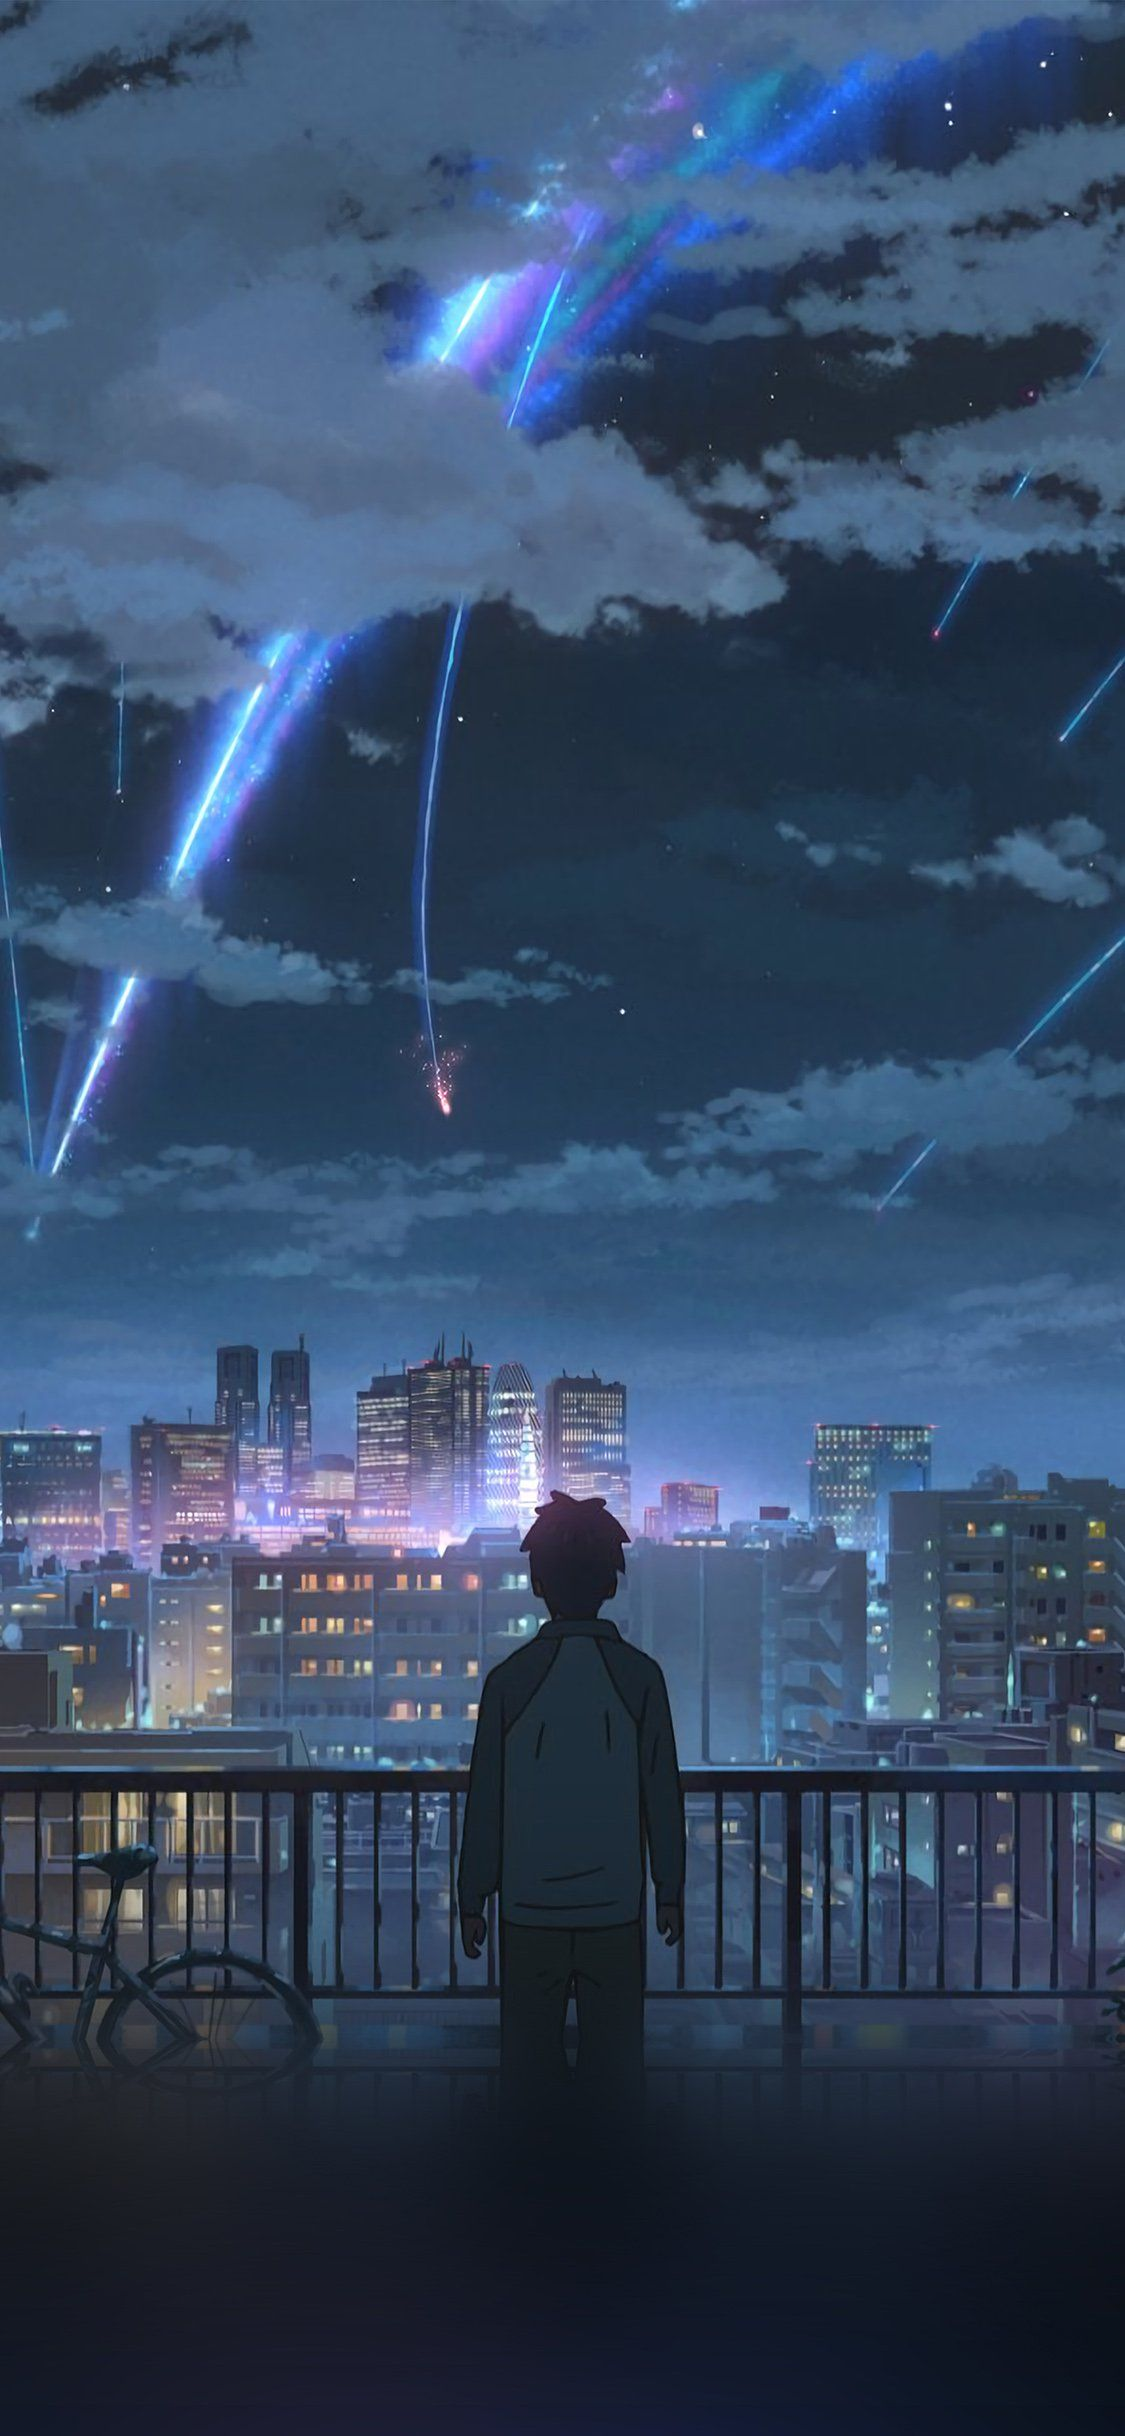 Your Name Wallpaper Iphone Live : wallpaper, iphone, Wallpapers, Wallpaper